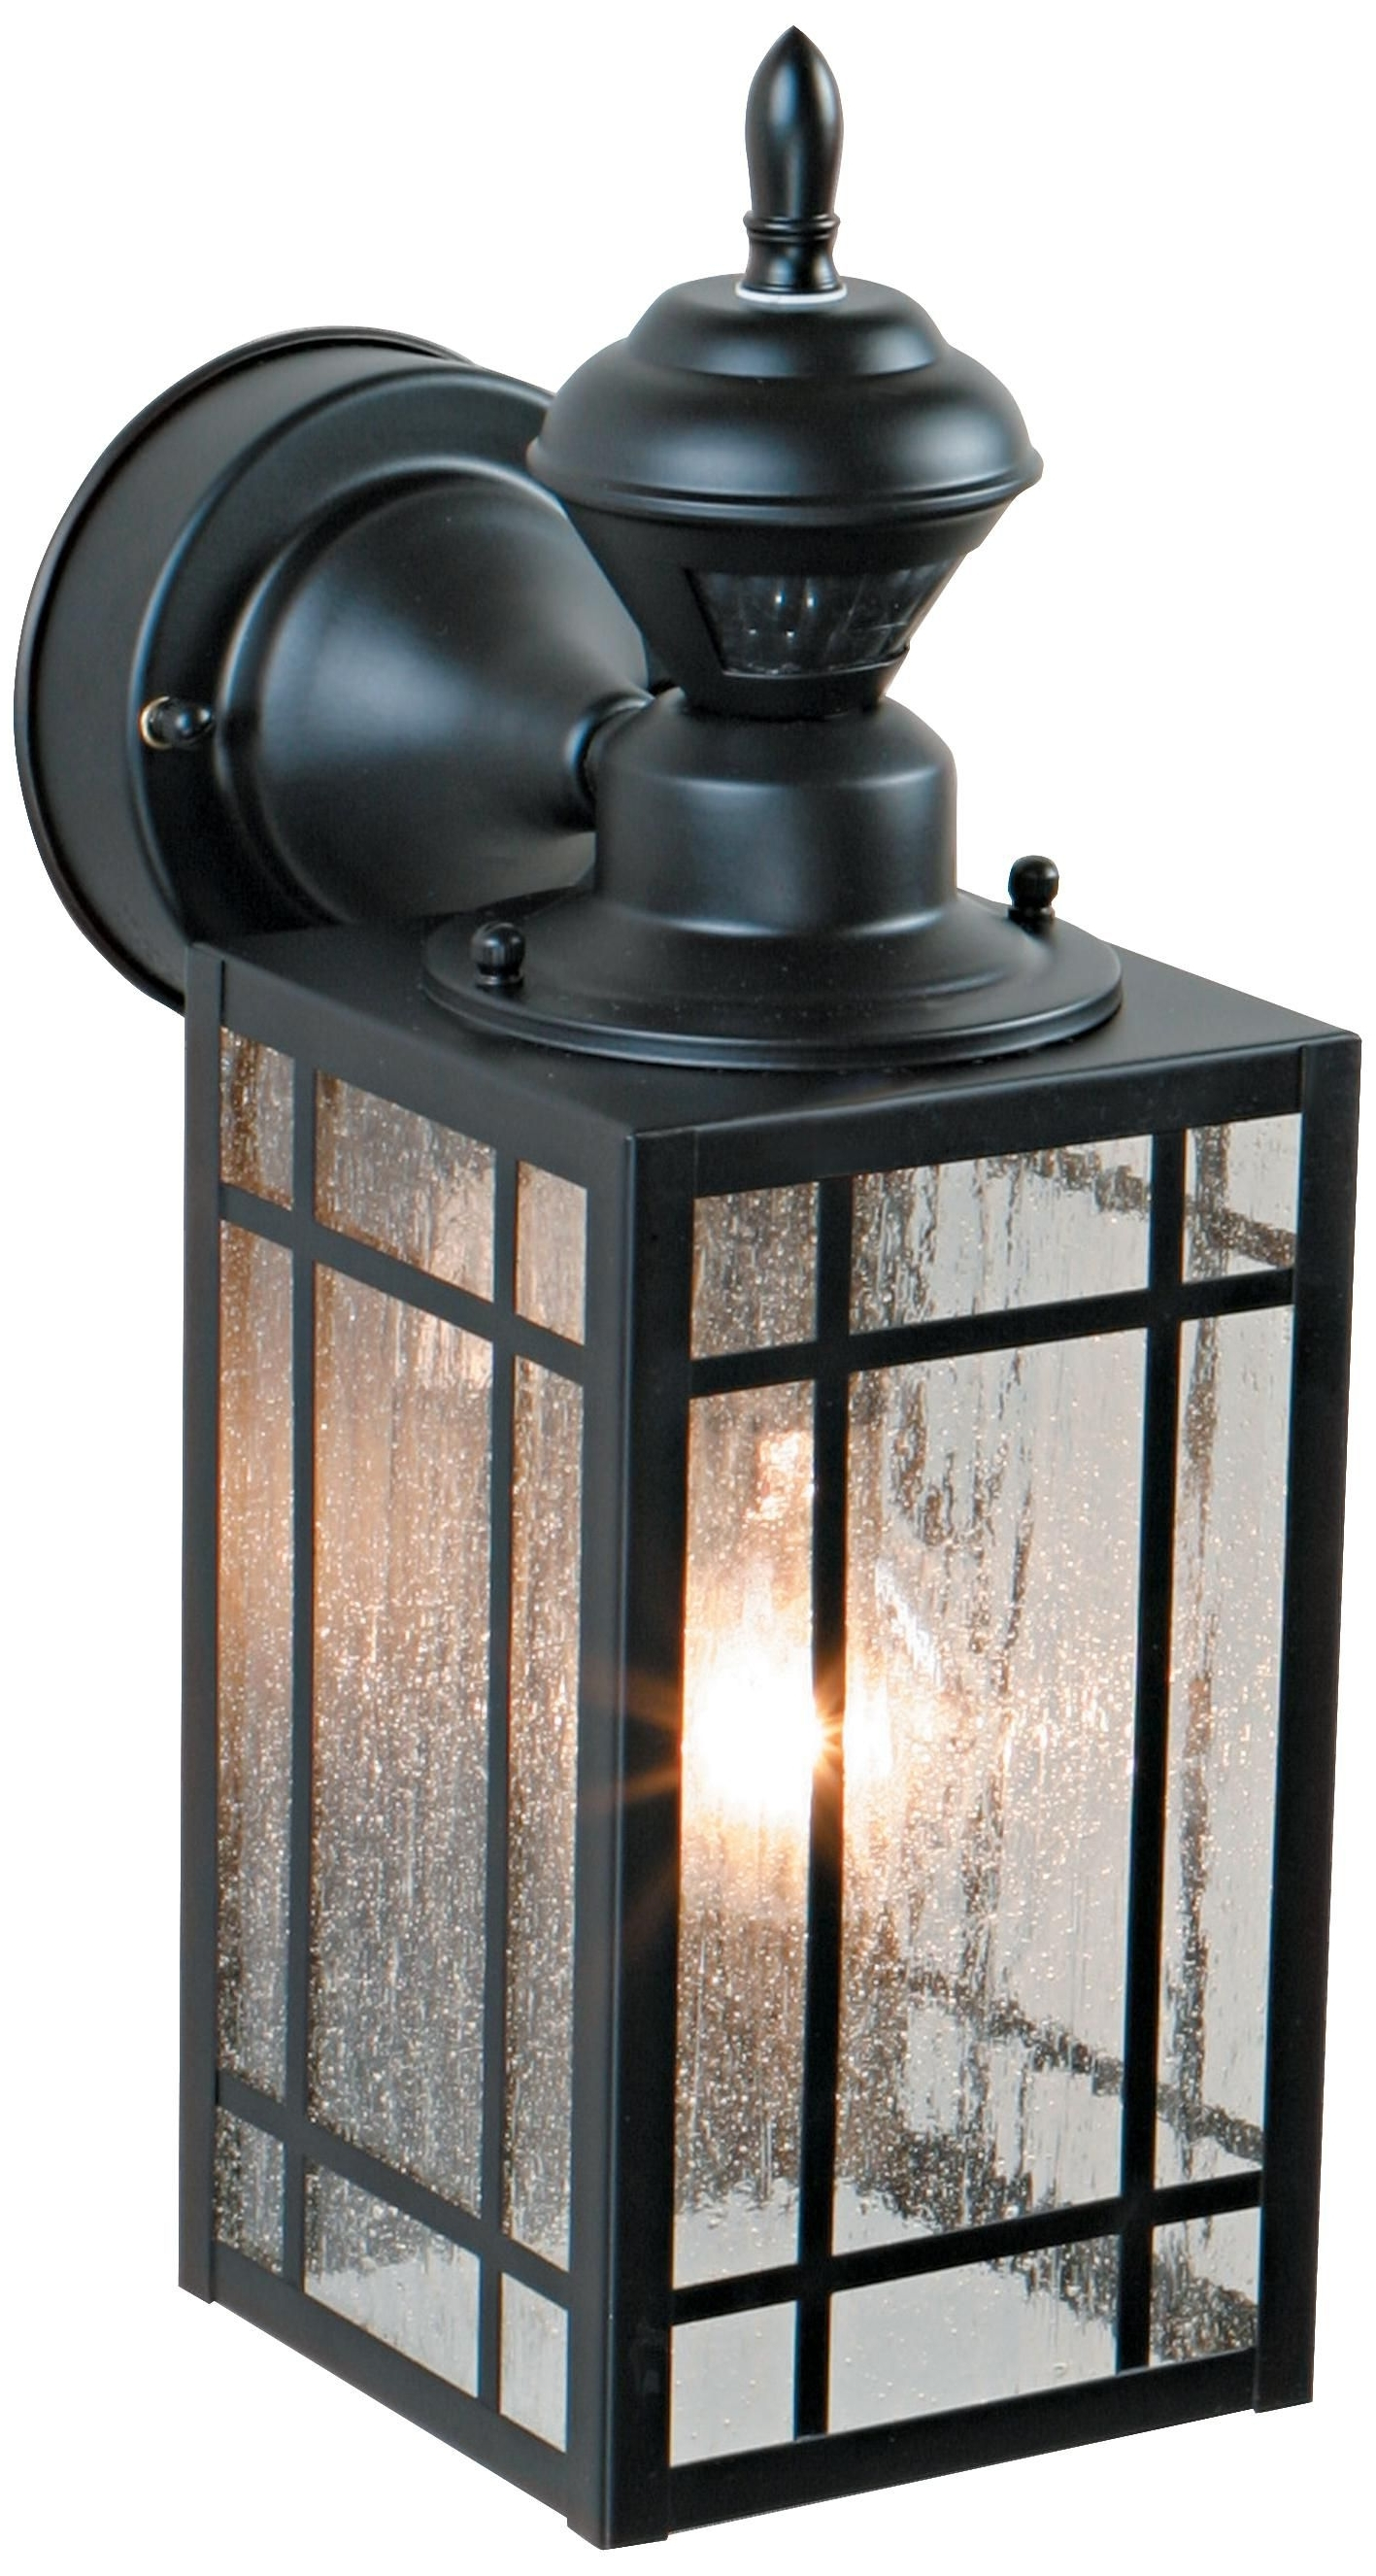 "Most Current Outdoor Motion Lanterns Regarding Point Grove 14 1/4"" High Motion Sensor Outdoor Light Hard To Find A (View 7 of 20)"